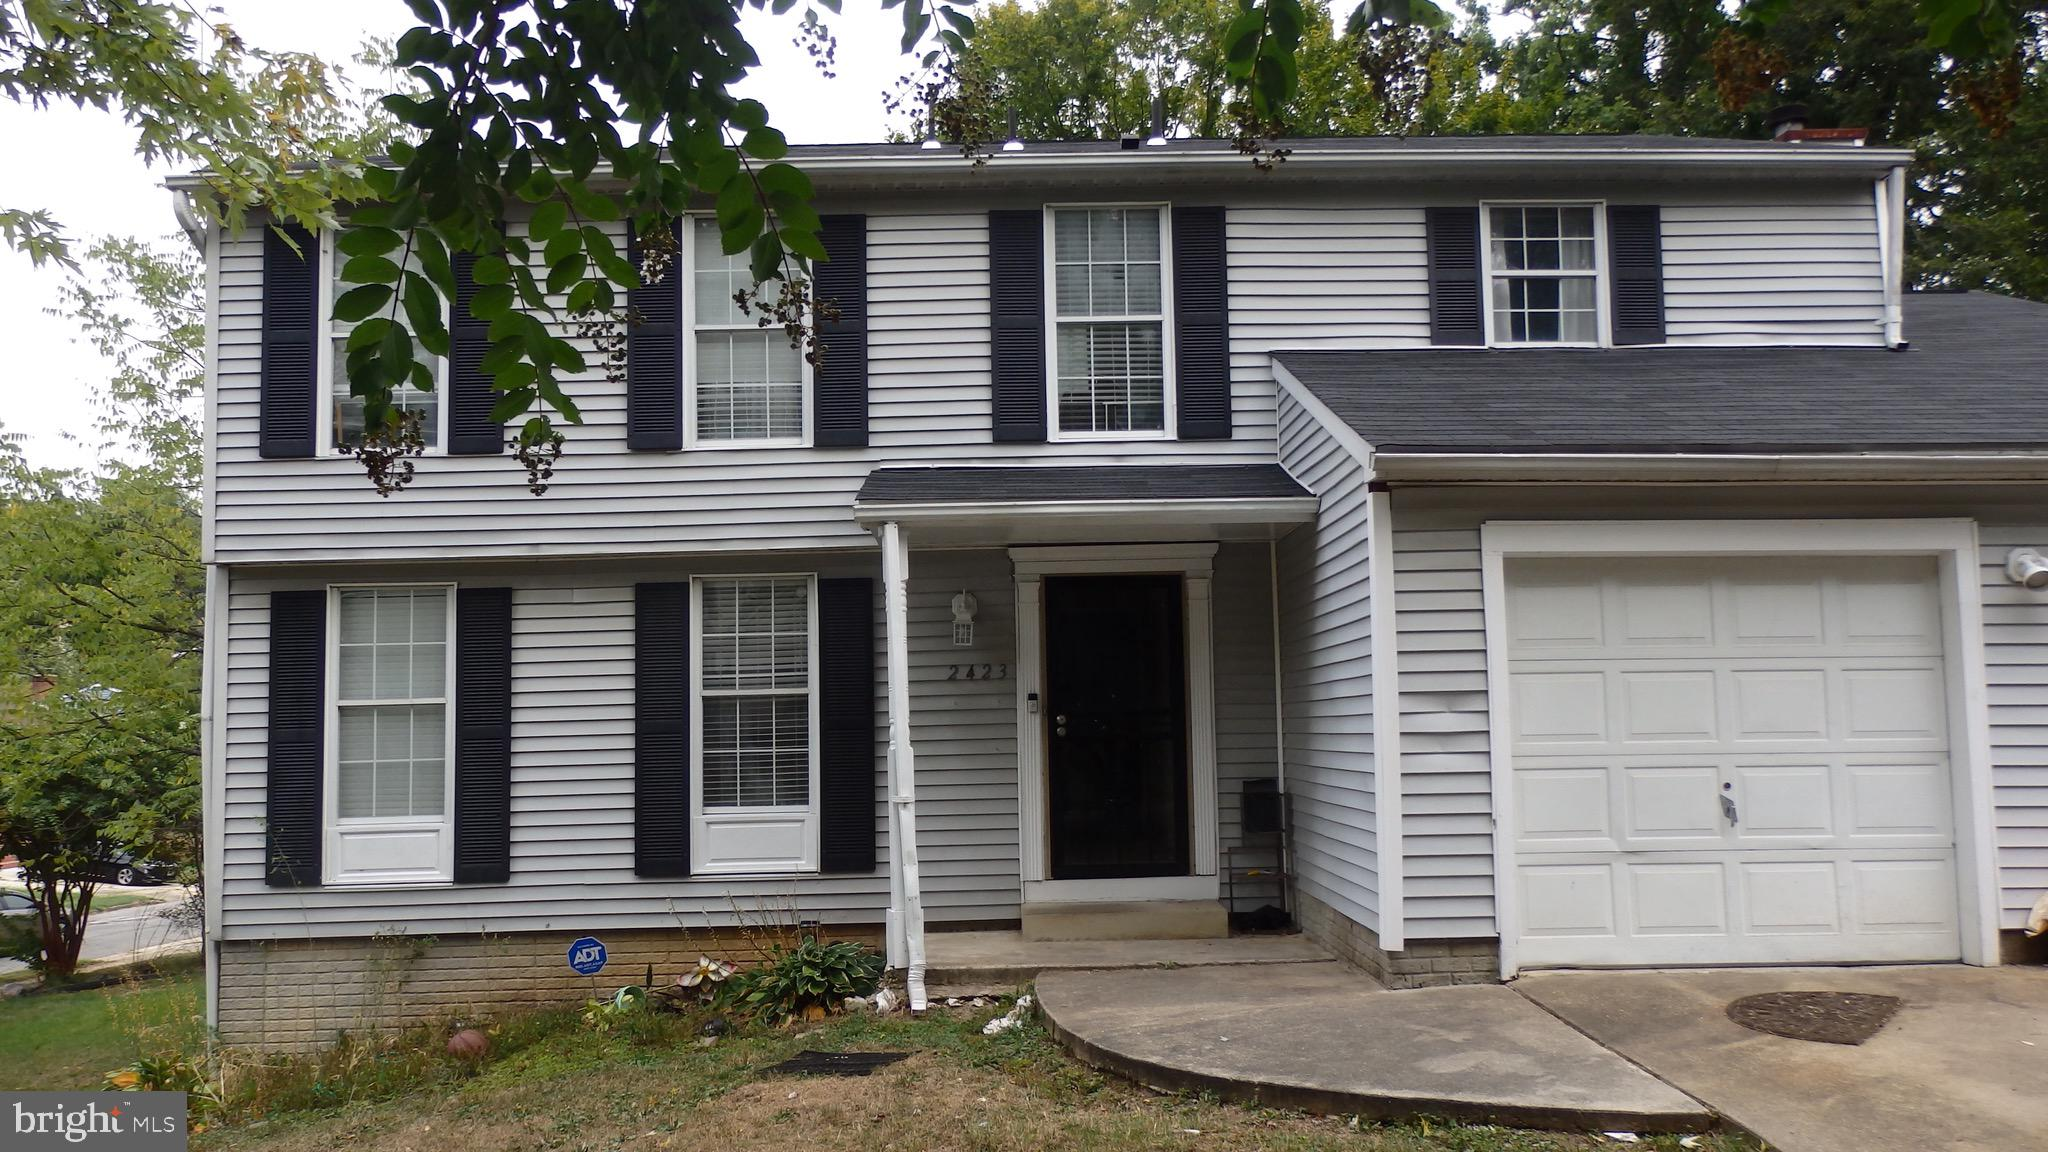 2423 PARKWAY, CHEVERLY, MD 20785